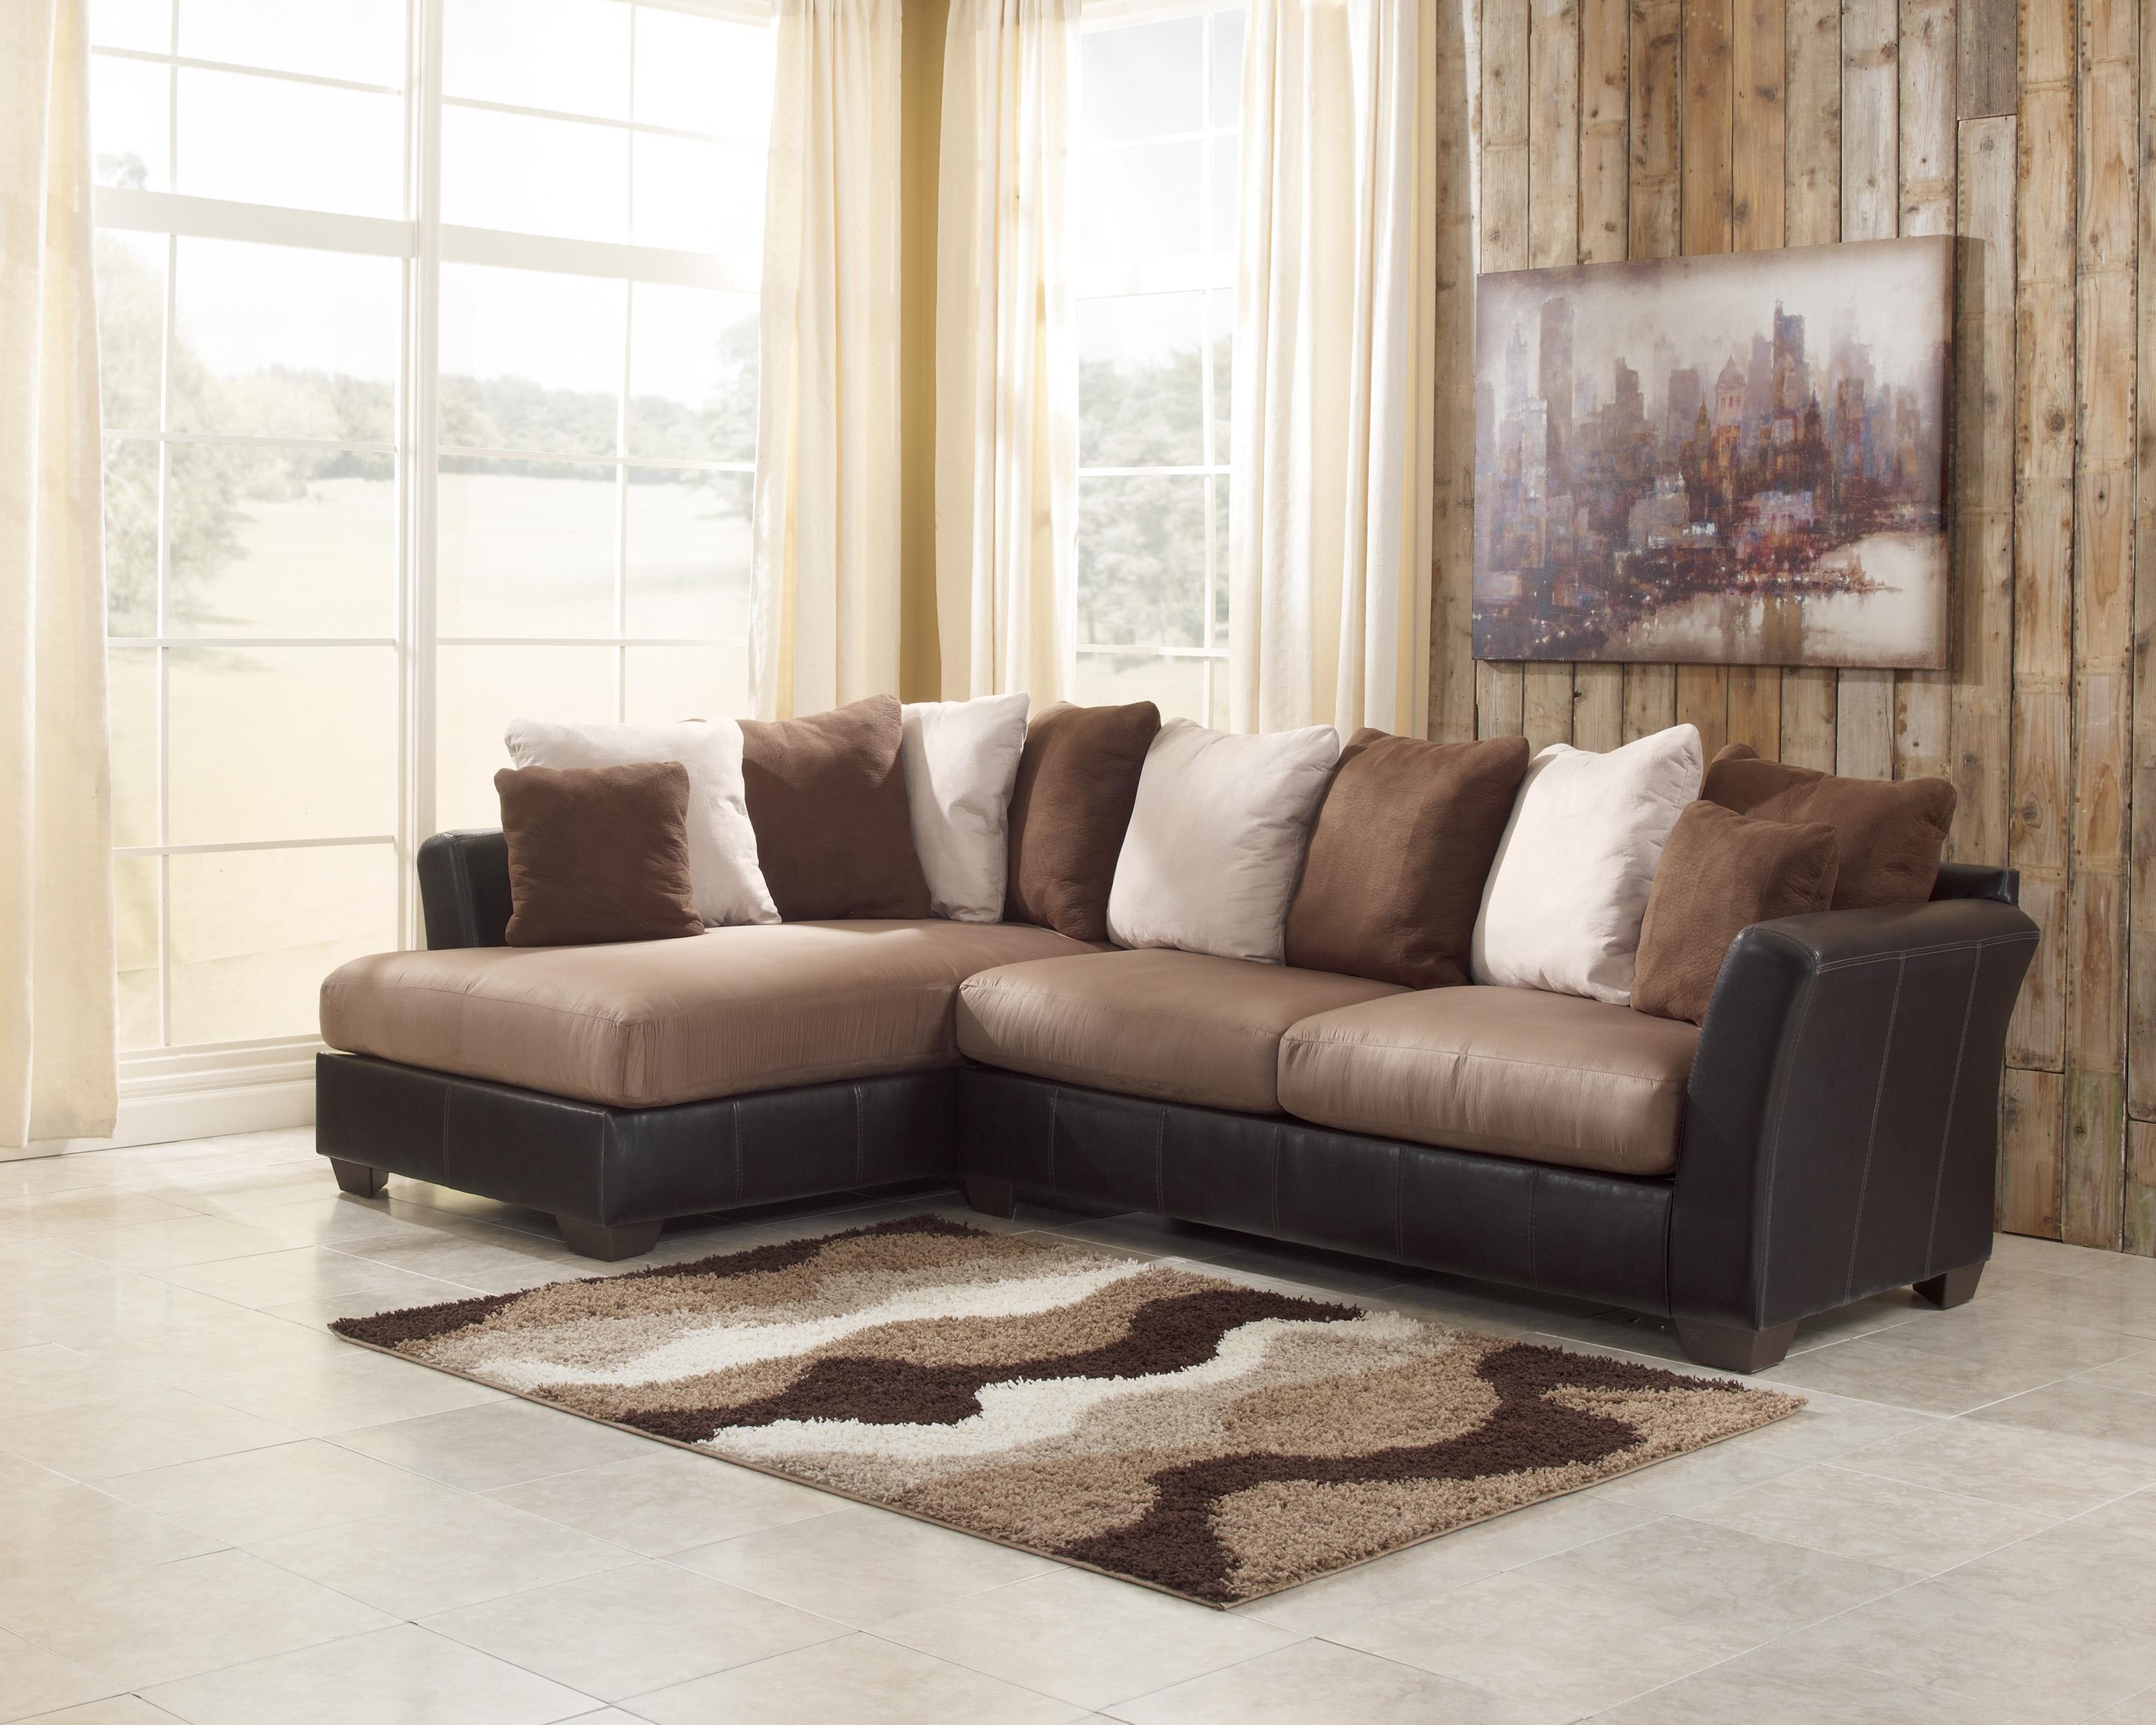 Furniture: Oversized Sectional Sofa | Jessa Place 3 Piece Intended For Small 2 Piece Sectional Sofas (View 3 of 23)